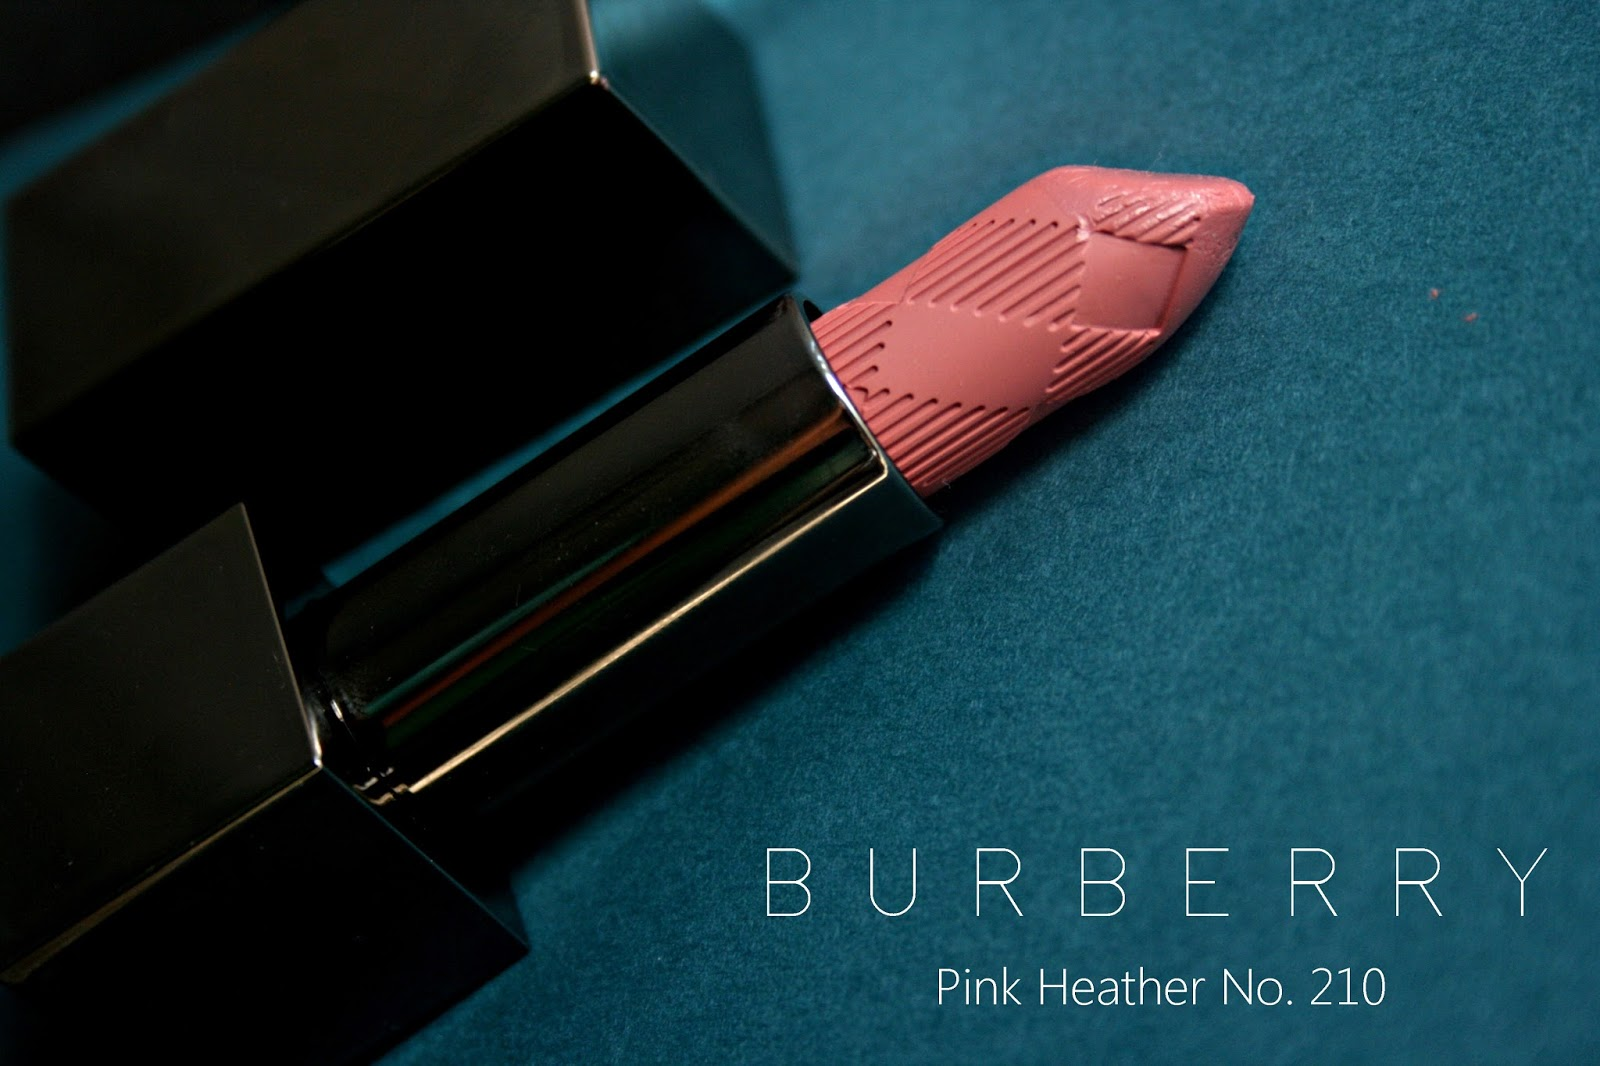 Burberry Pink Heather No.210 Lip Mist Review, Photos & Swatches